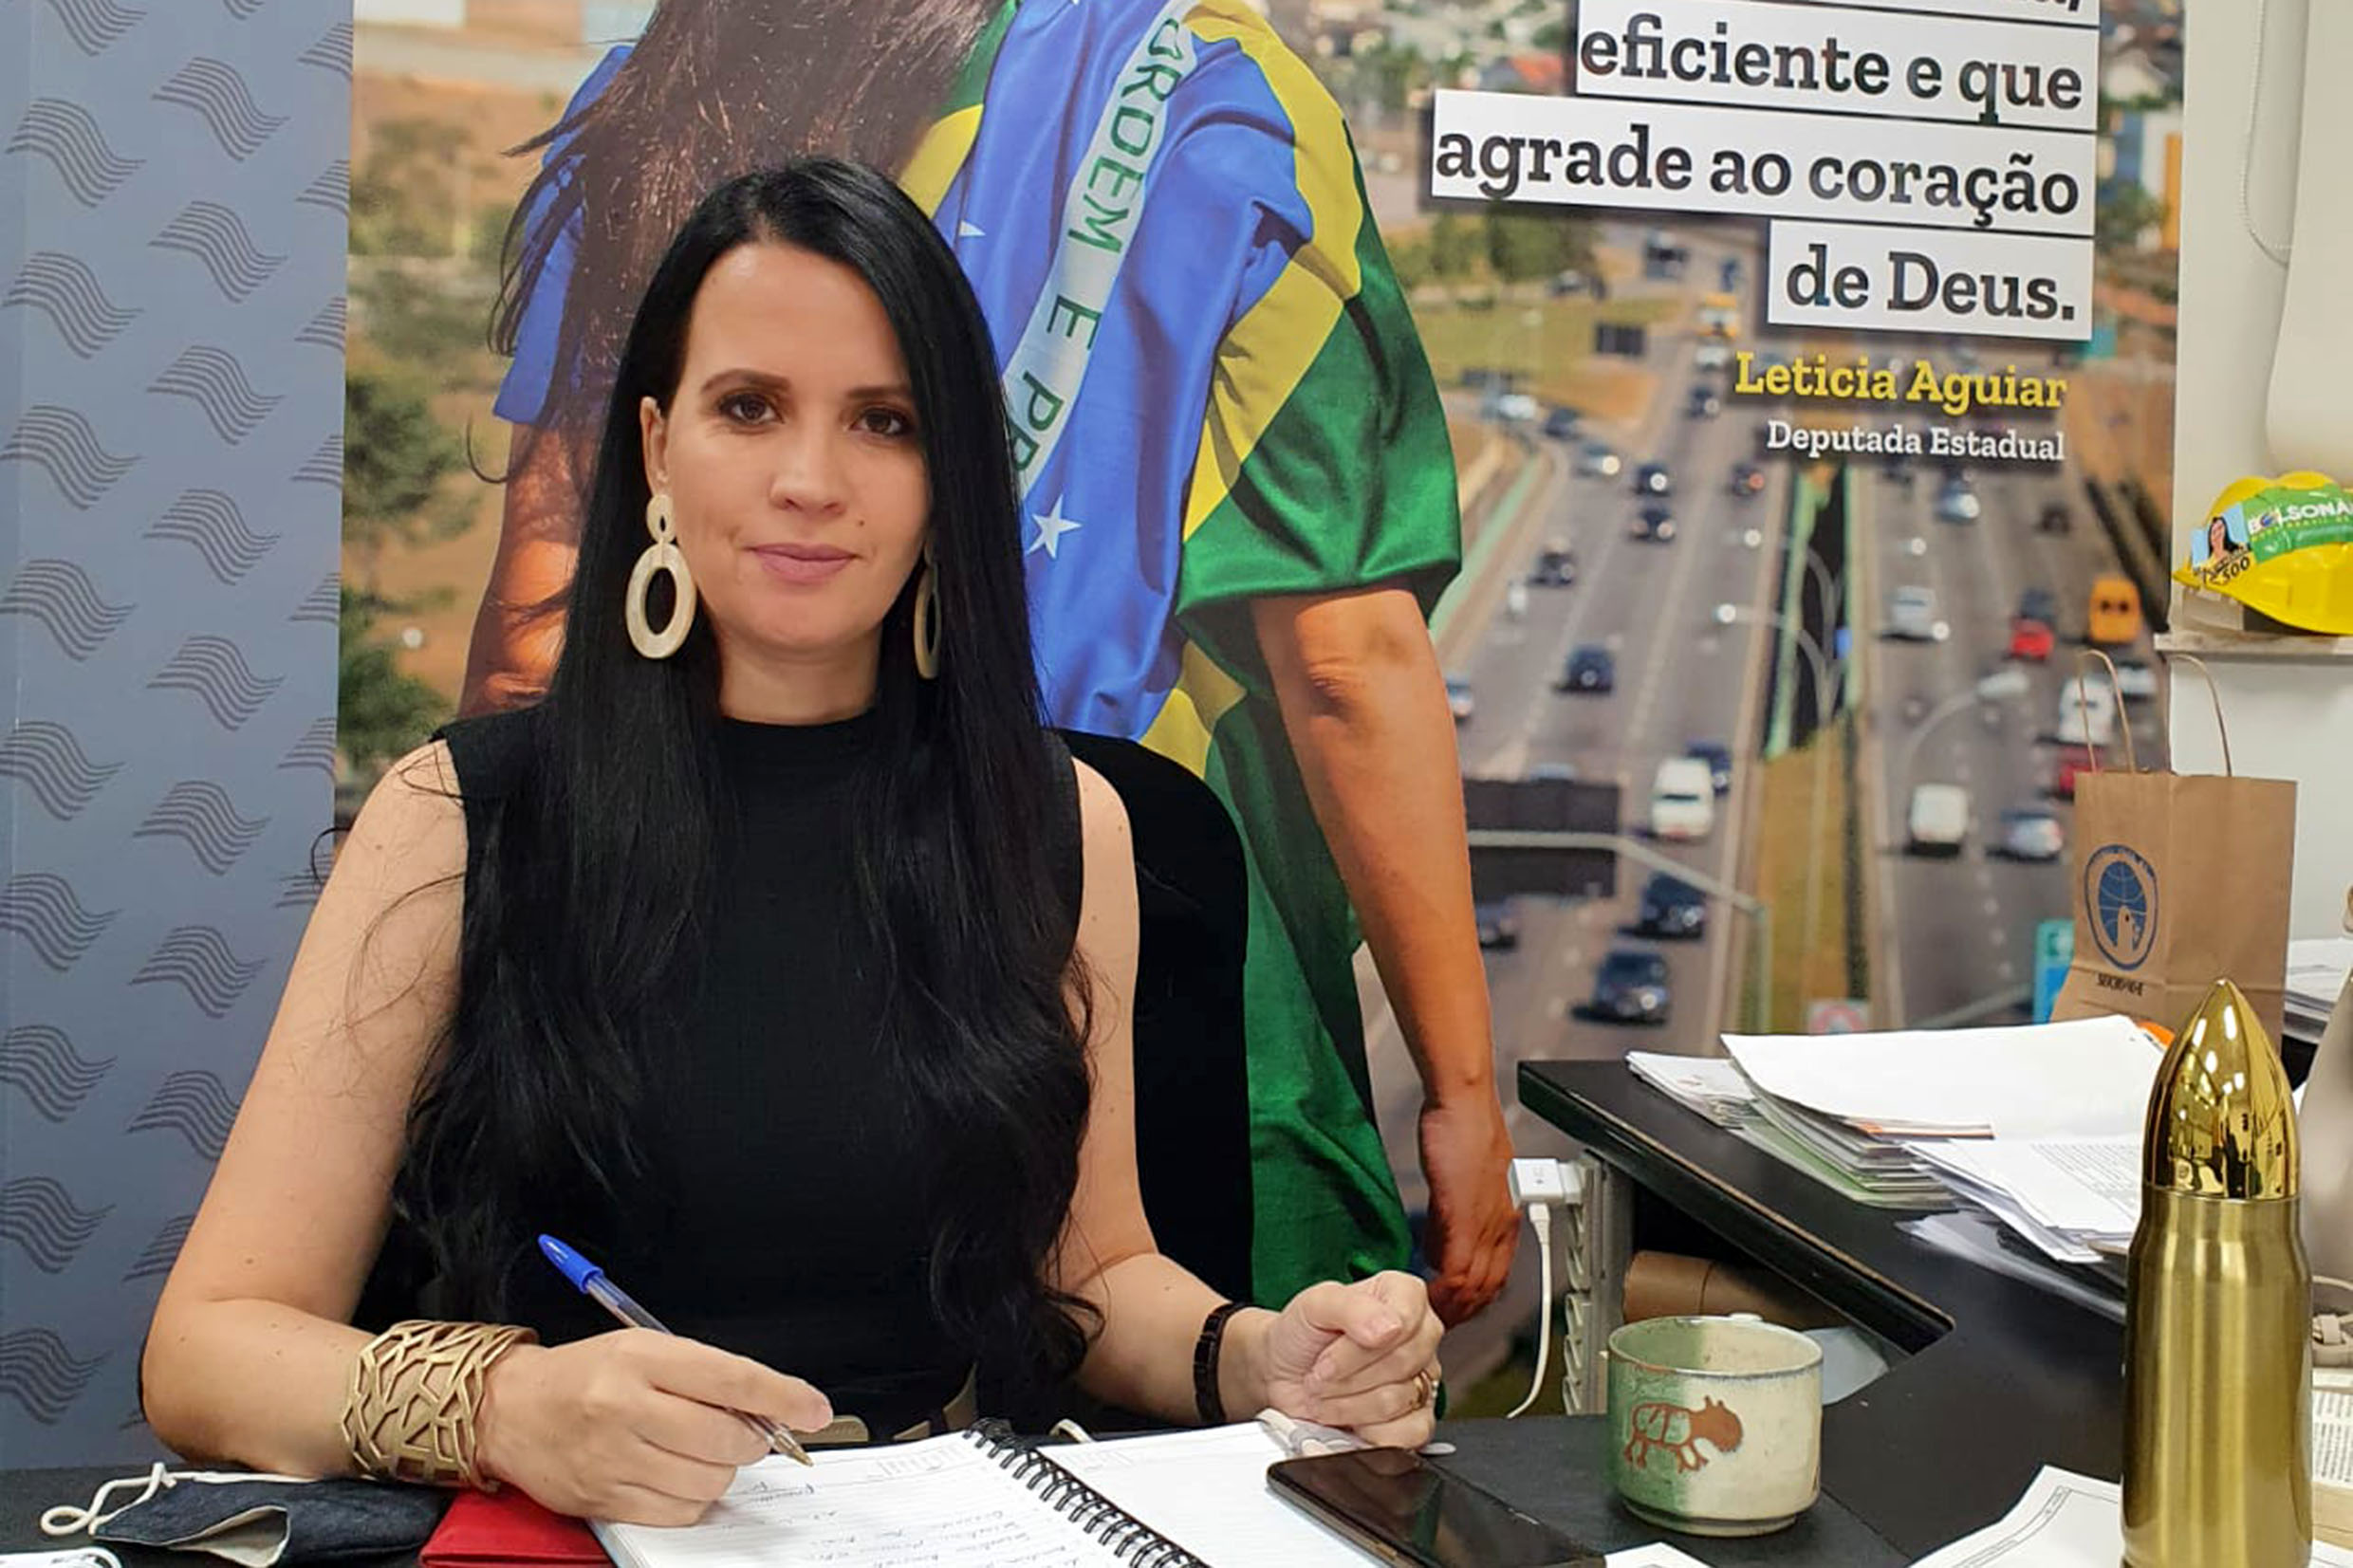 Leticia Aguiar<a style='float:right' href='https://www3.al.sp.gov.br/repositorio/noticia/N-05-2020/fg249007.jpg' target=_blank><img src='/_img/material-file-download-white.png' width='14px' alt='Clique para baixar a imagem'></a>